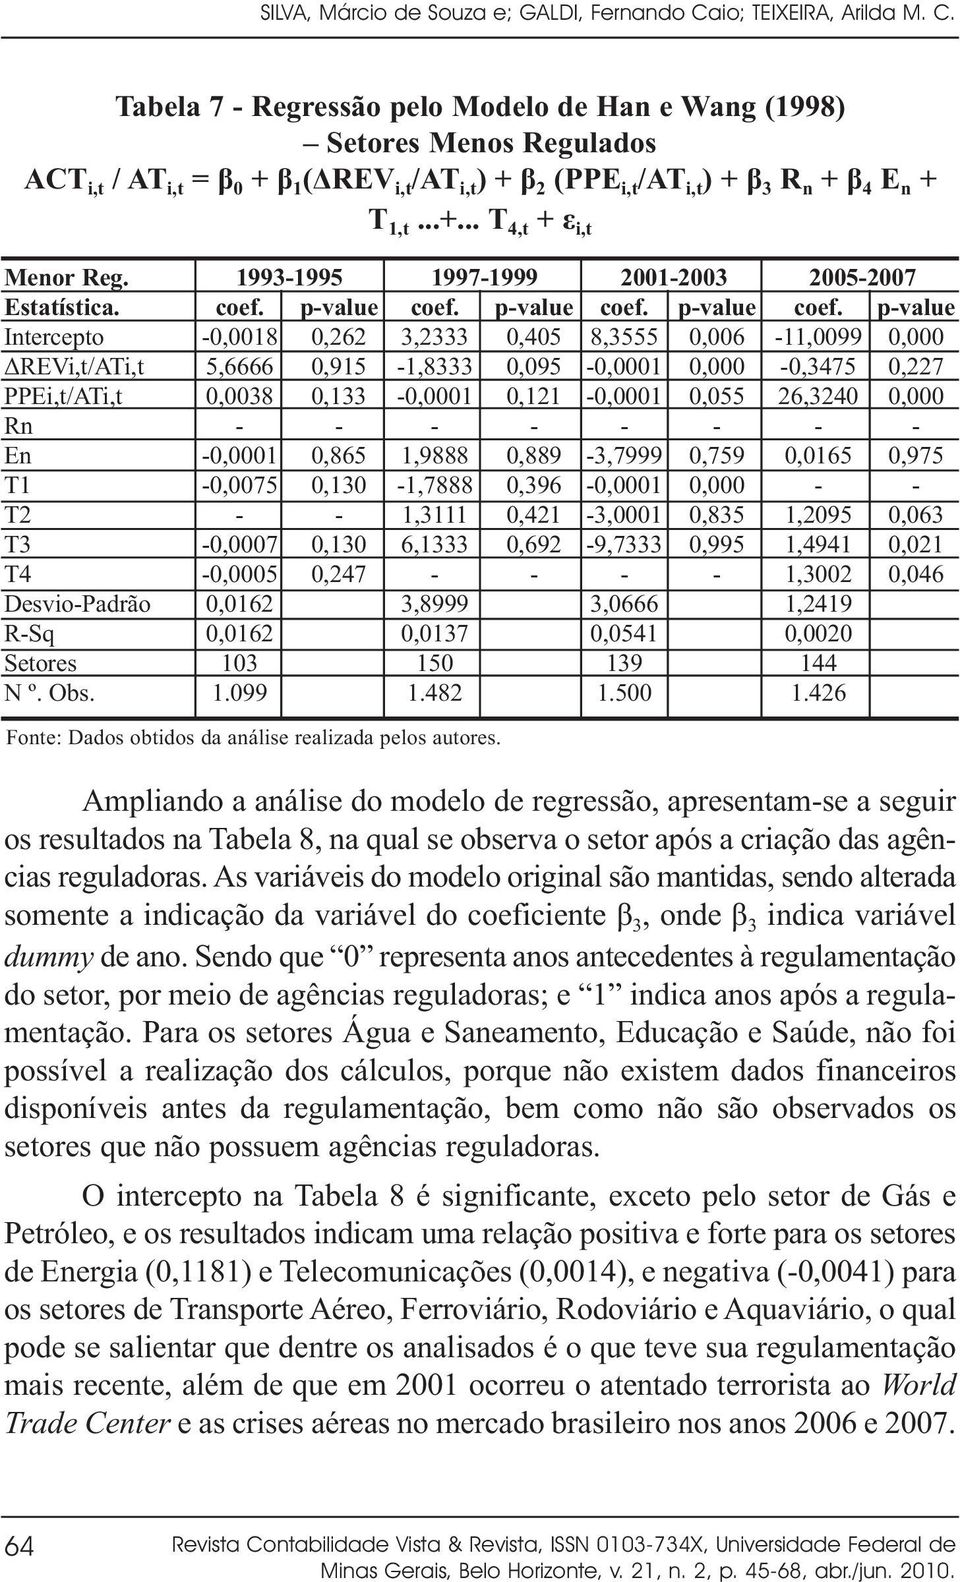 Tabela 7 Regressão pelo Modelo de Han e Wang (1998) Setores Menos Regulados ACT i,t / AT i,t = β 0 + β 1 ( REV i,t /AT i,t ) + β 2 (PPE i,t /AT i,t ) + β 3 R n + β 4 E n + T 1,t...+... T 4,t + ε i,t Menor Reg.